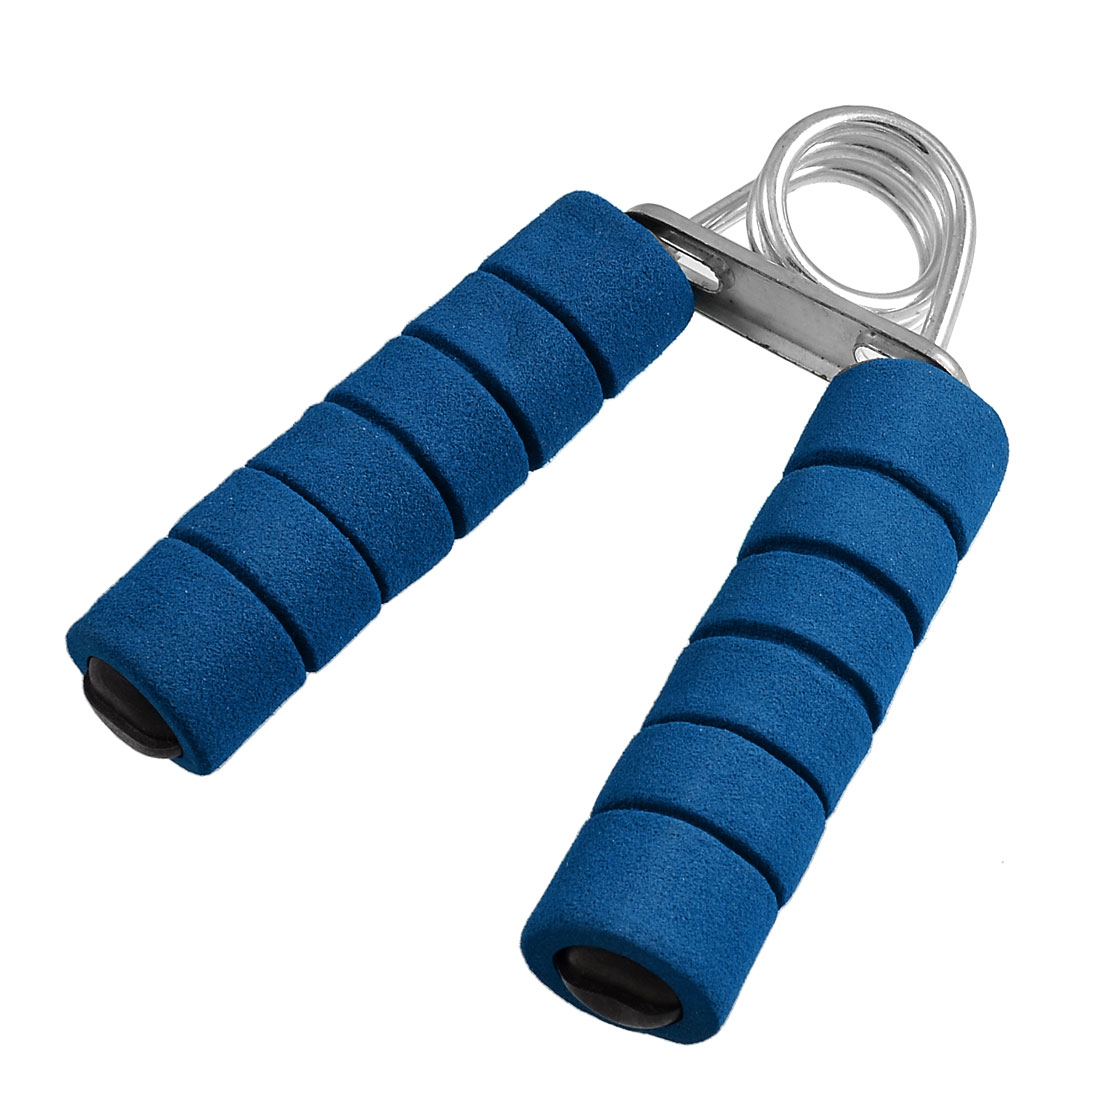 Blue Foam Coated Metal Handgrip Spring Action Muscle Developer Hand Gripper